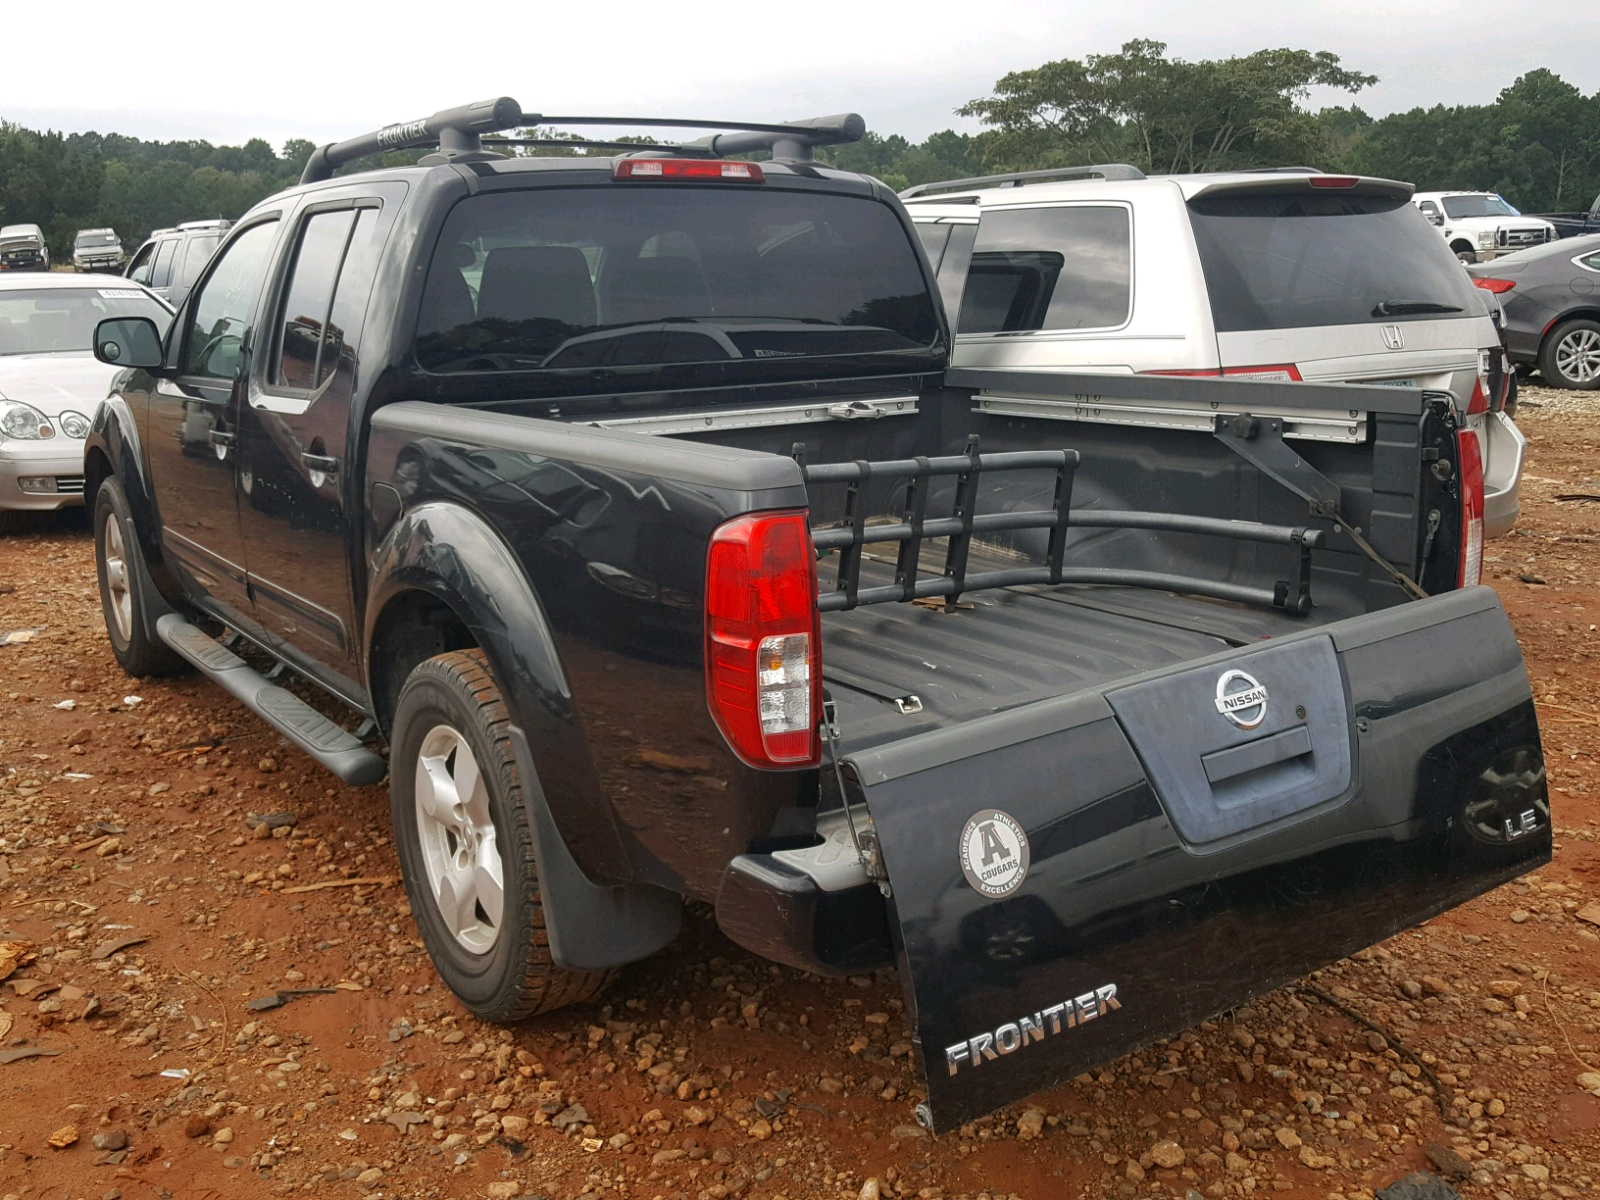 hight resolution of  1n6ad07u85c458373 2005 nissan frontier c 4 0l angle view 1n6ad07u85c458373